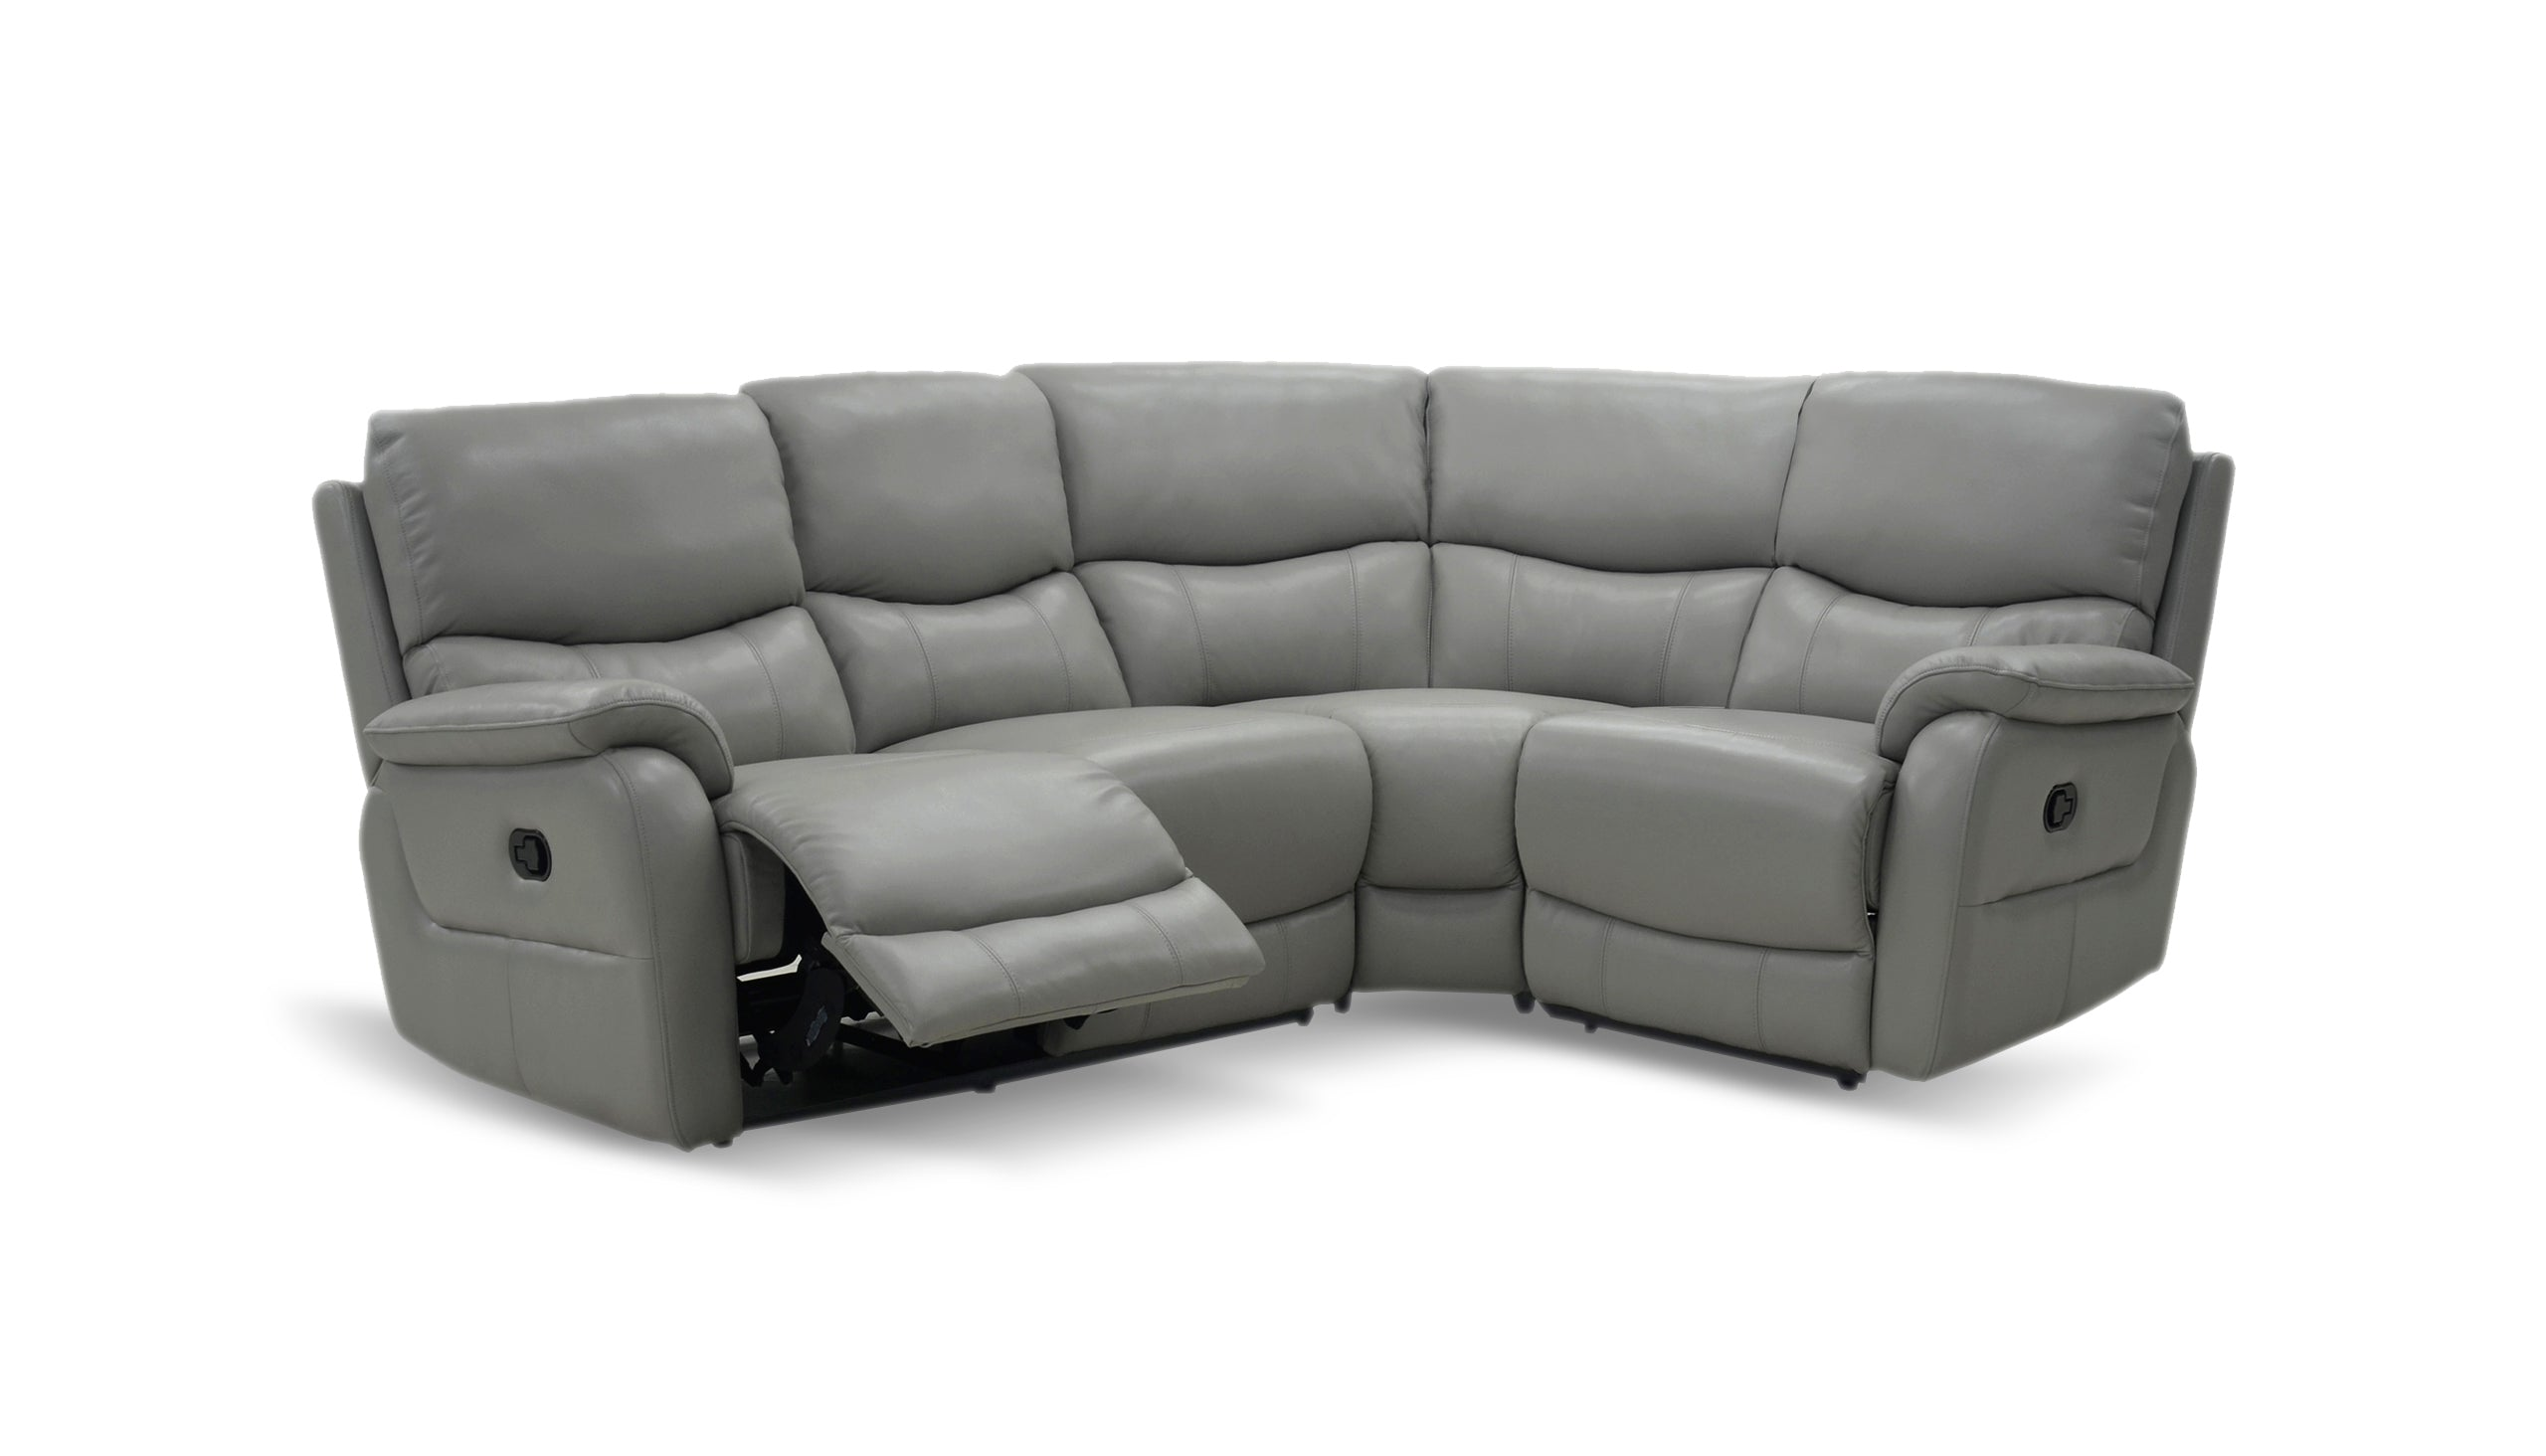 Evelyn Left Hand Facing 2 Corner 1 Power Recliner Sofa in Leather